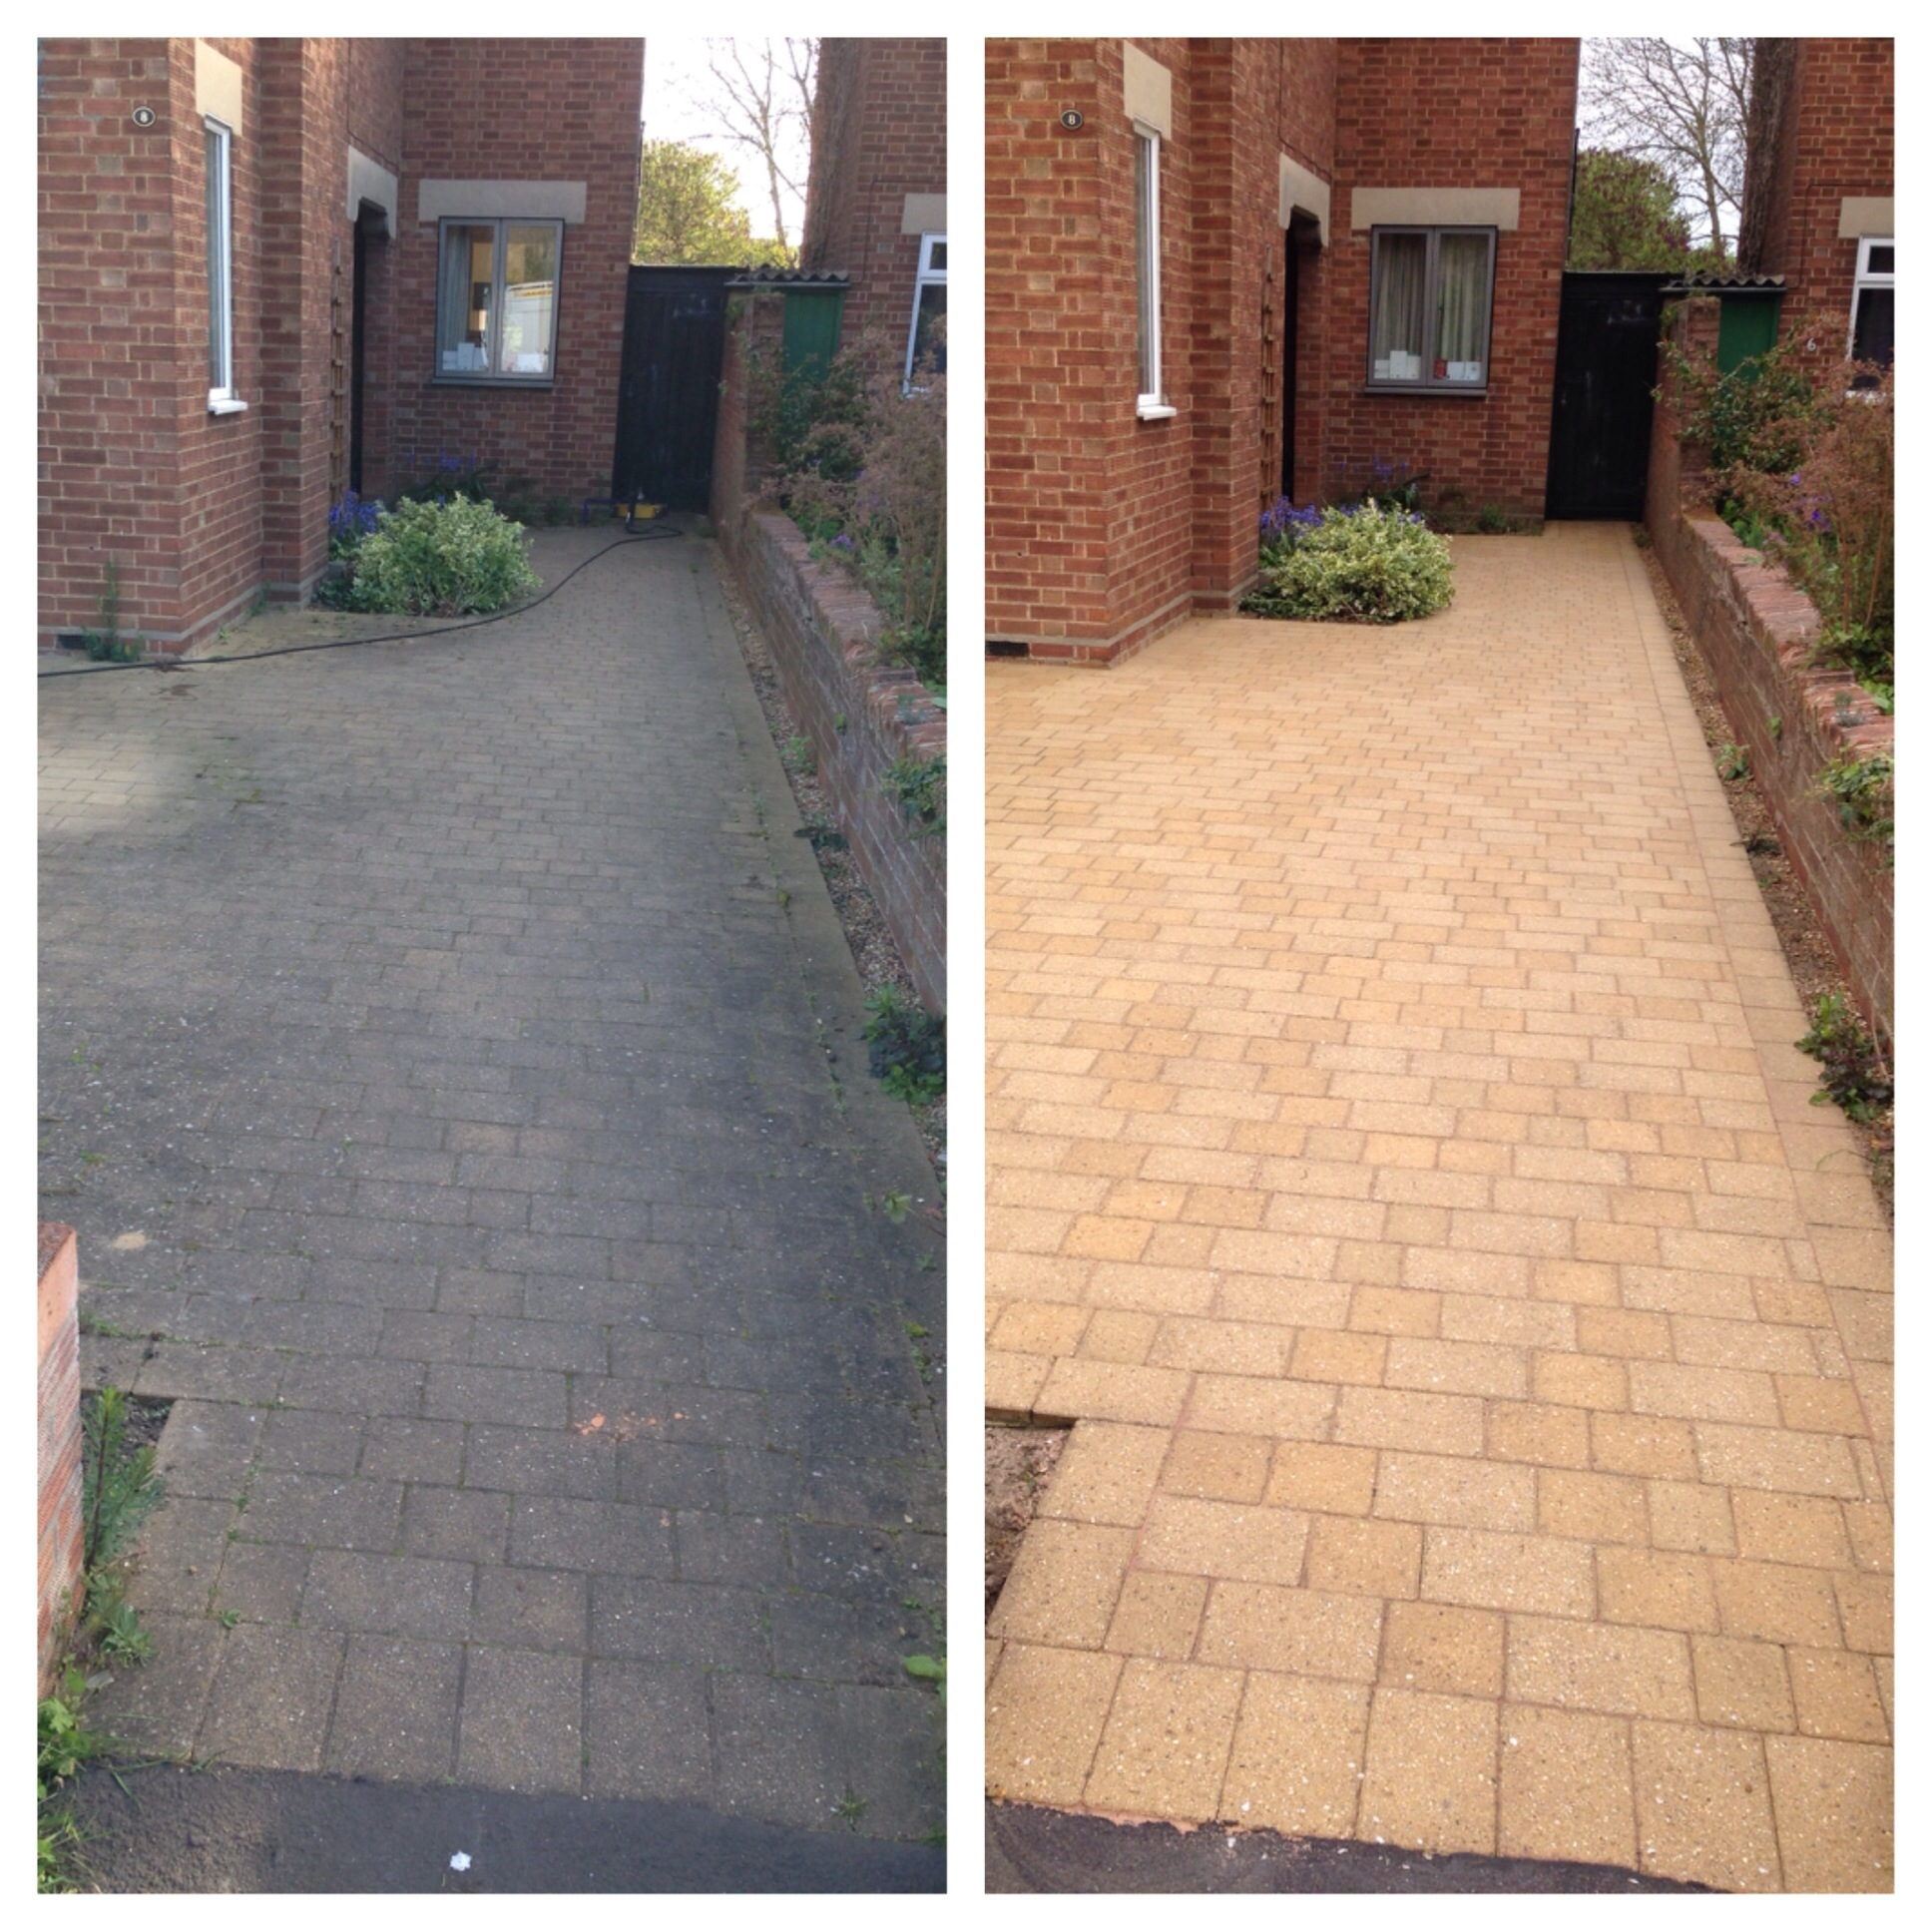 Driveway cleaning chesterton cambridge cambridge block for Best way to clean driveway